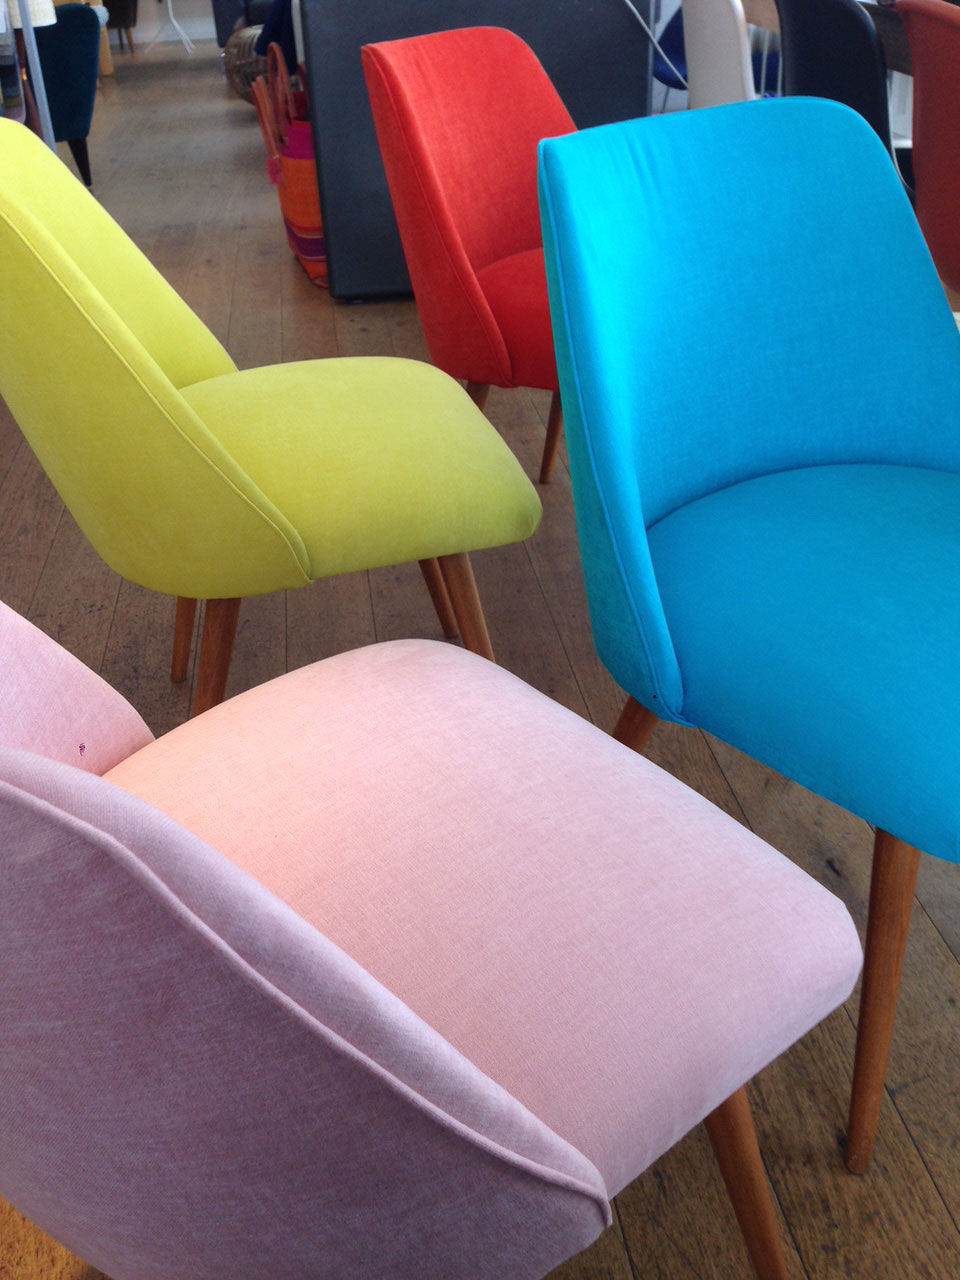 Vintage chairs in Do South, Crystal Palace